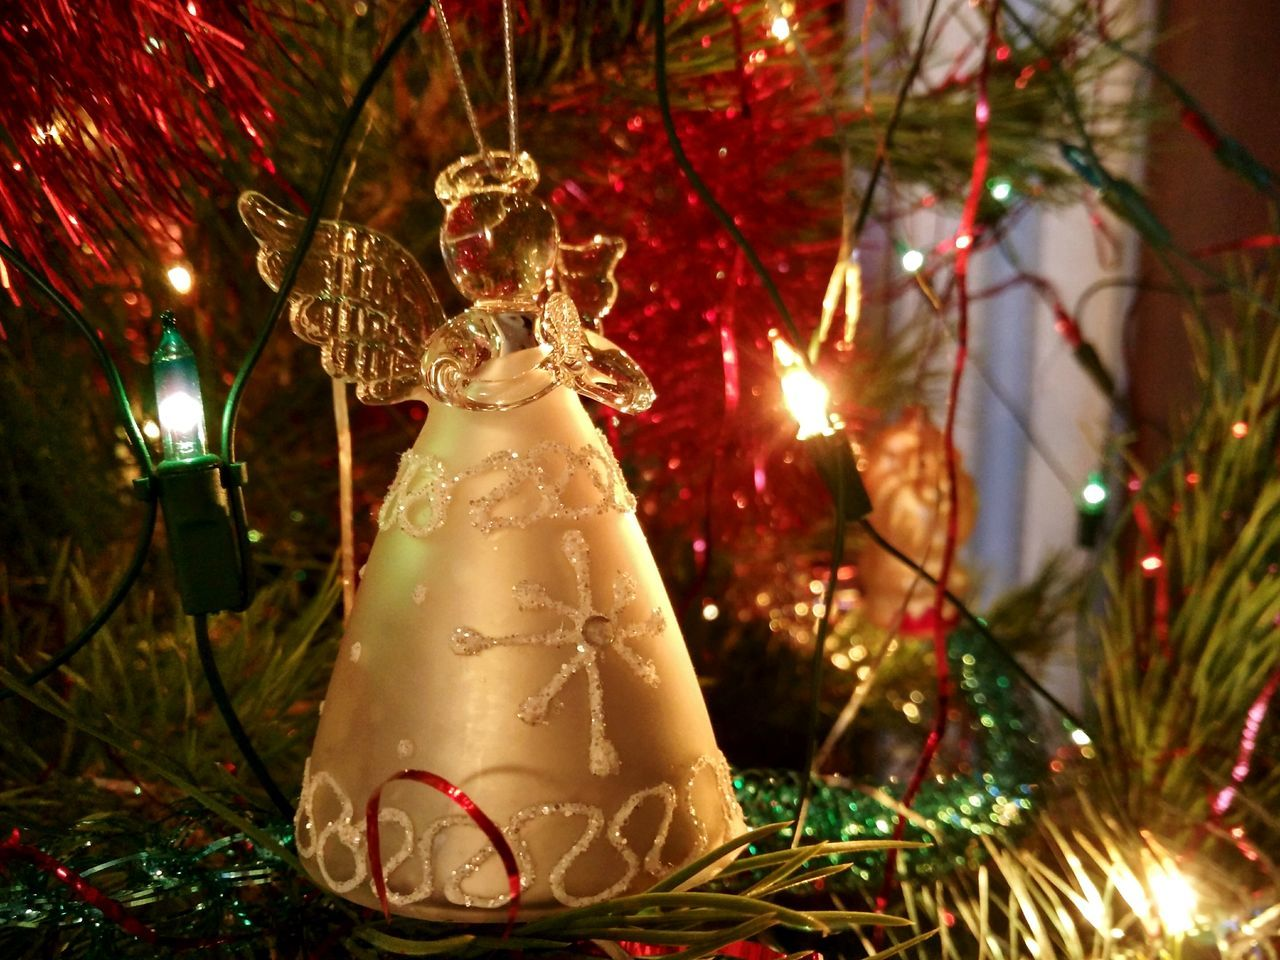 Christmas Christmas Tree Illuminated Christmas Decoration Christmas Lights Tree No People Christmas Ornament Winter Celebration Close-up Russia Happy New Year New Year Angel Angel Wings Angel Statuette First Eyeem Photo